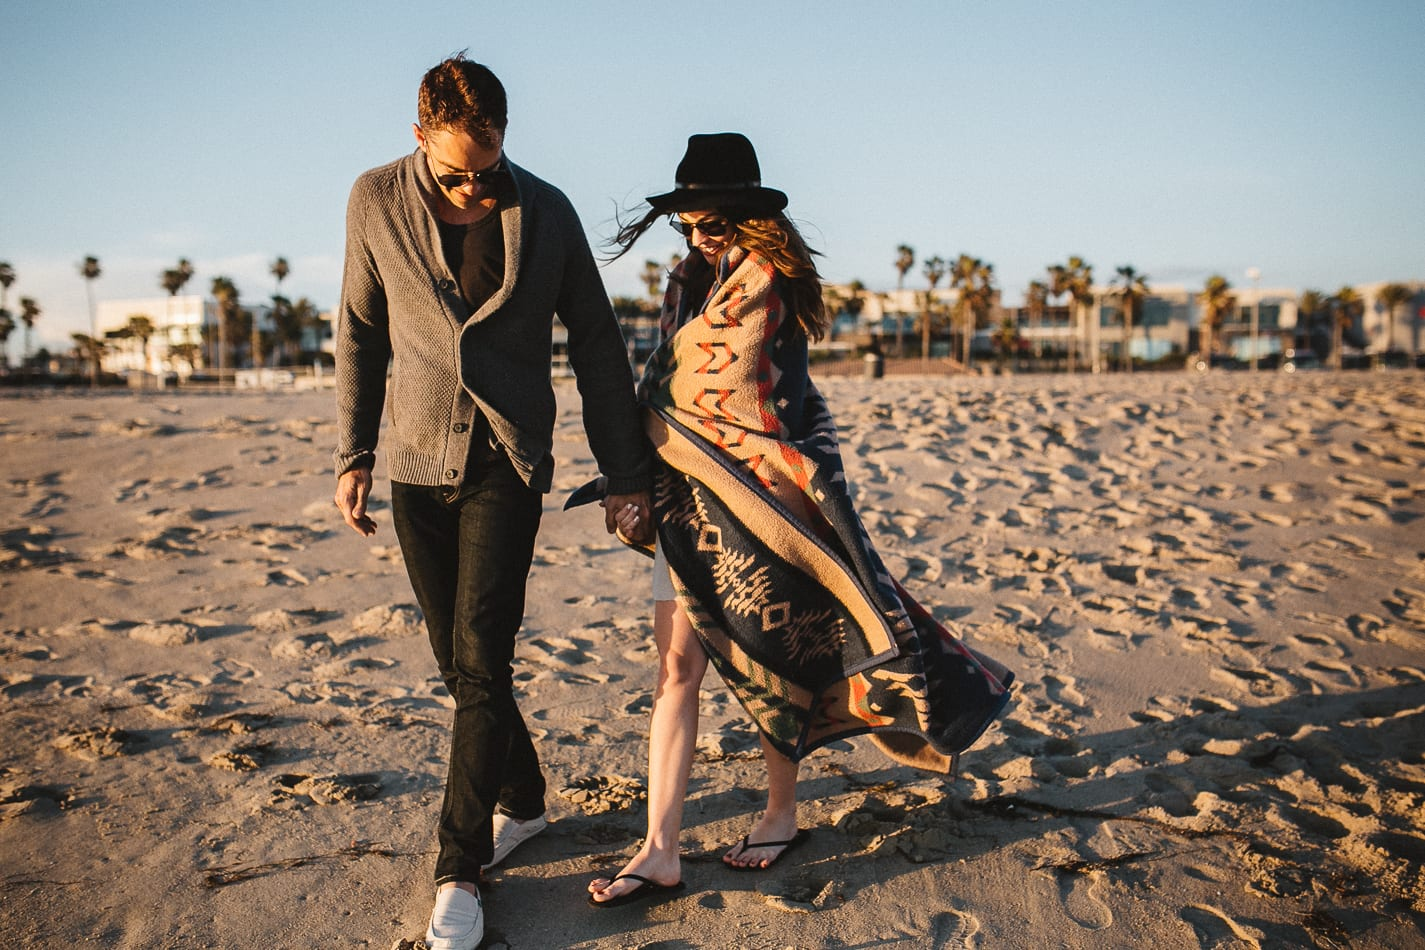 jason-alyssa-huntington-beach-california-engagement-photographer-4